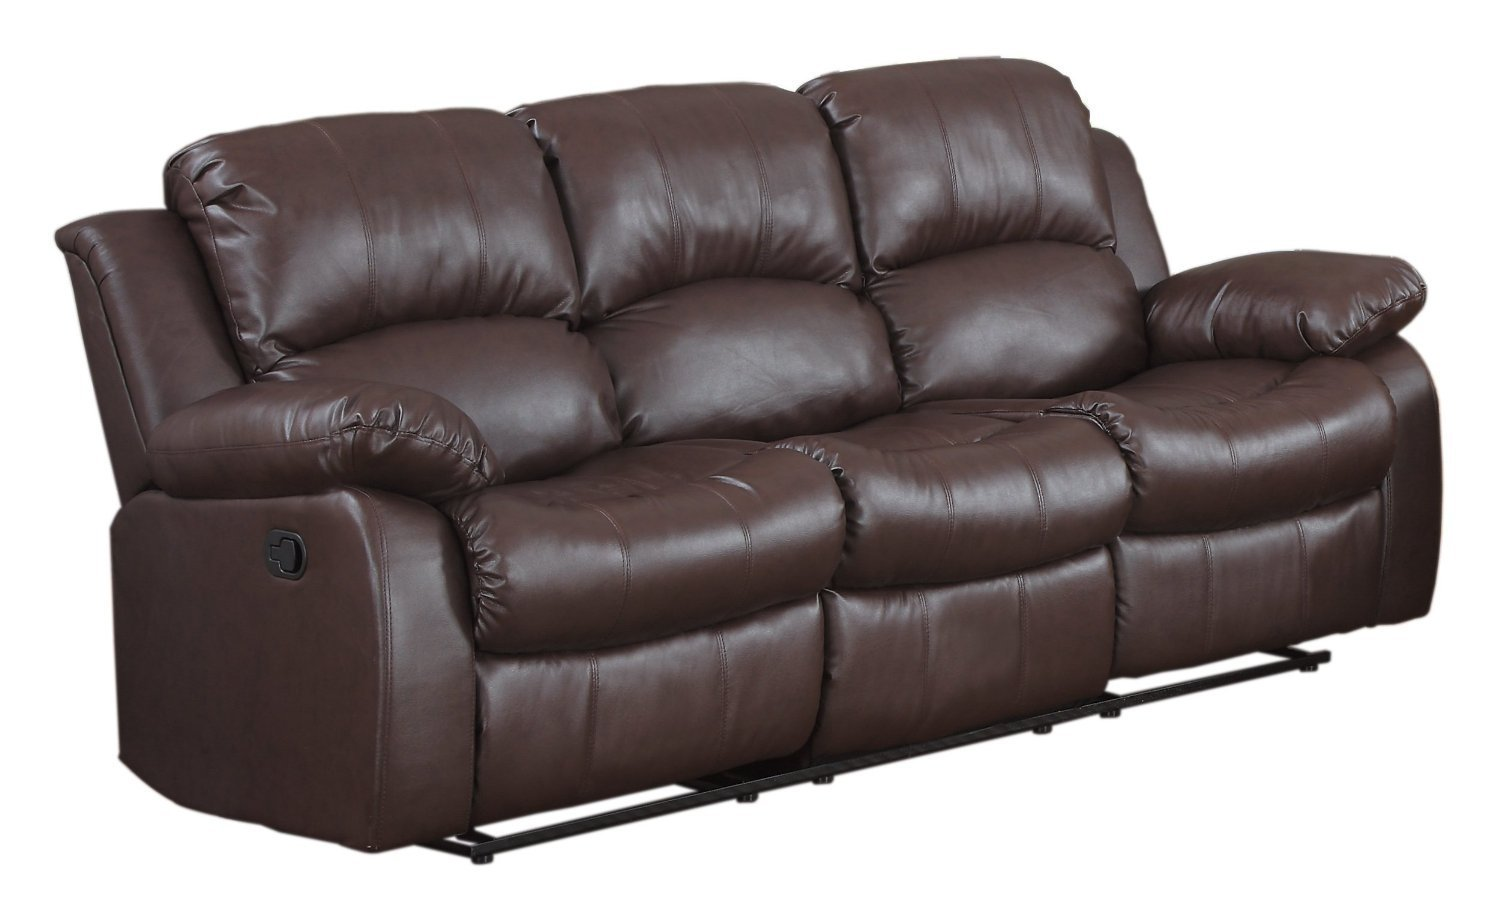 Brown Leather Couch - Home Furniture Design